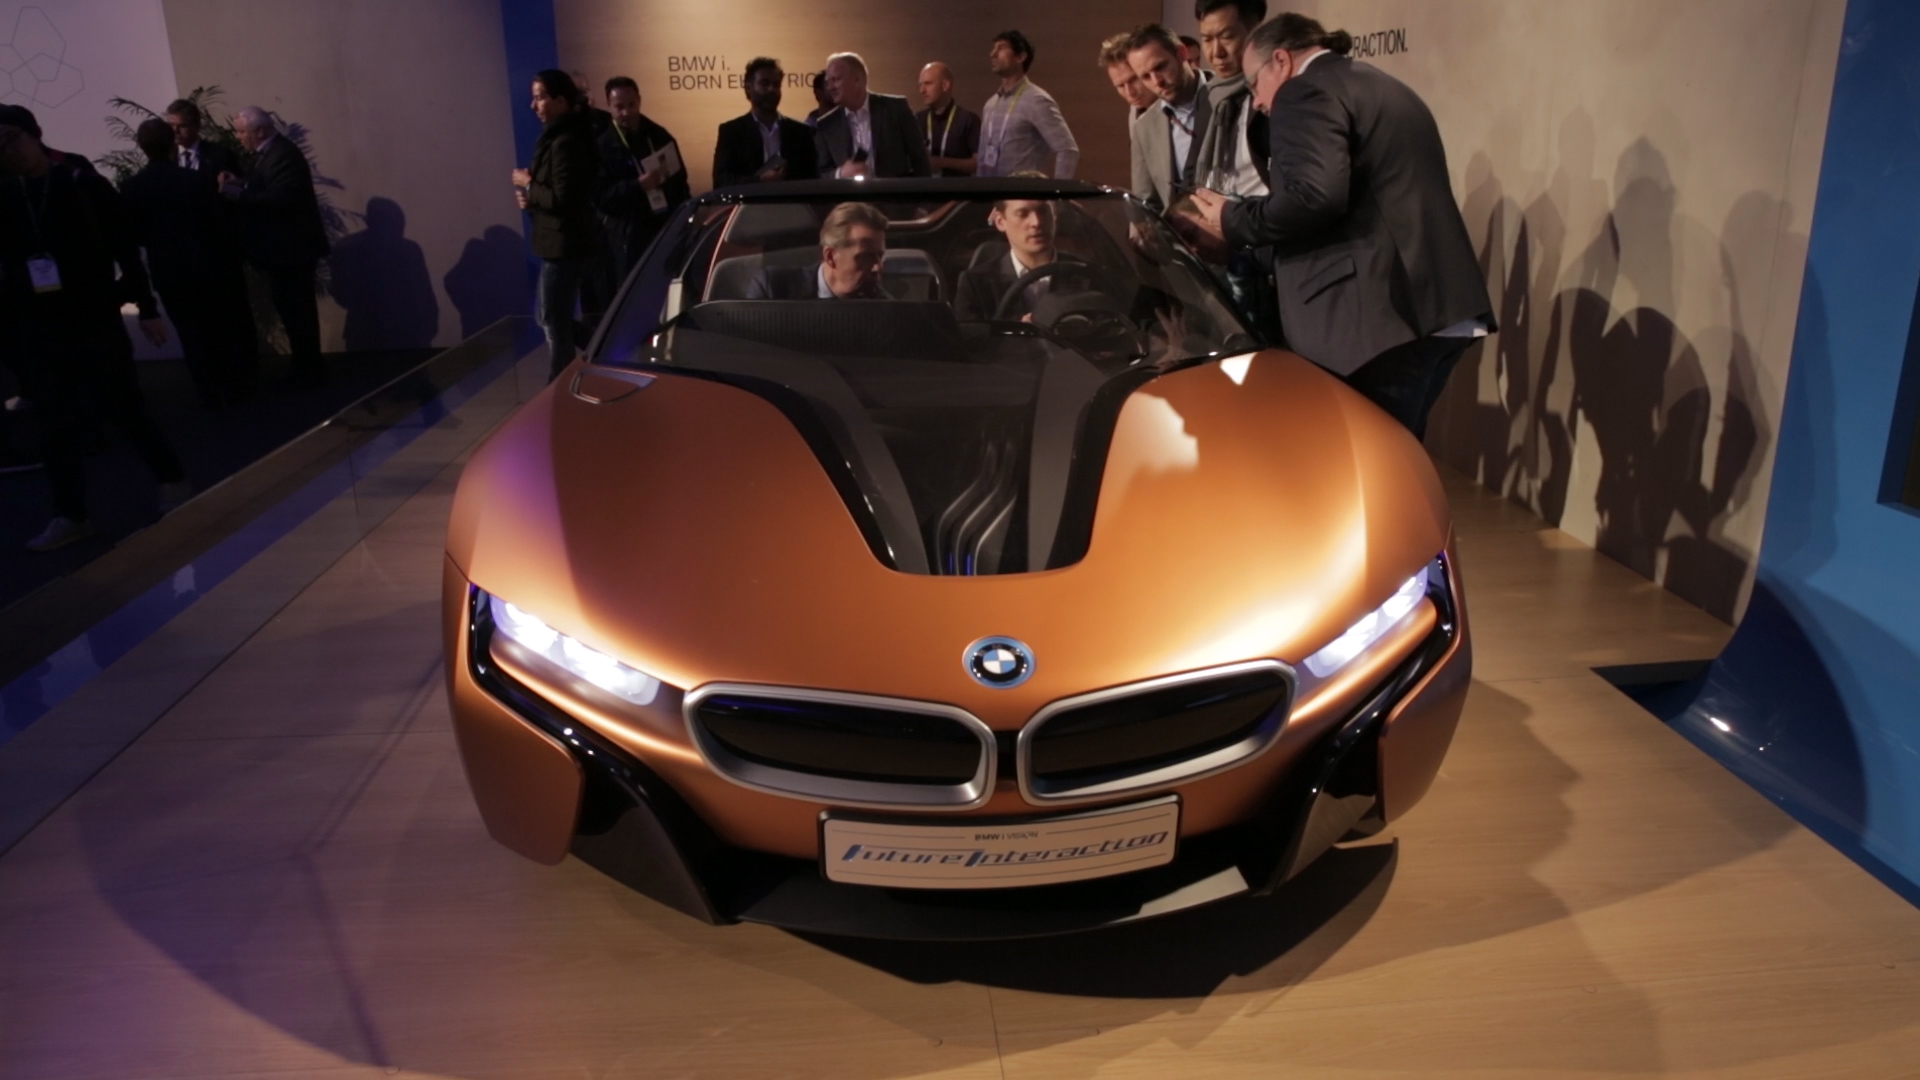 Video: BMW shows hand-wave controlled parking, dashboard